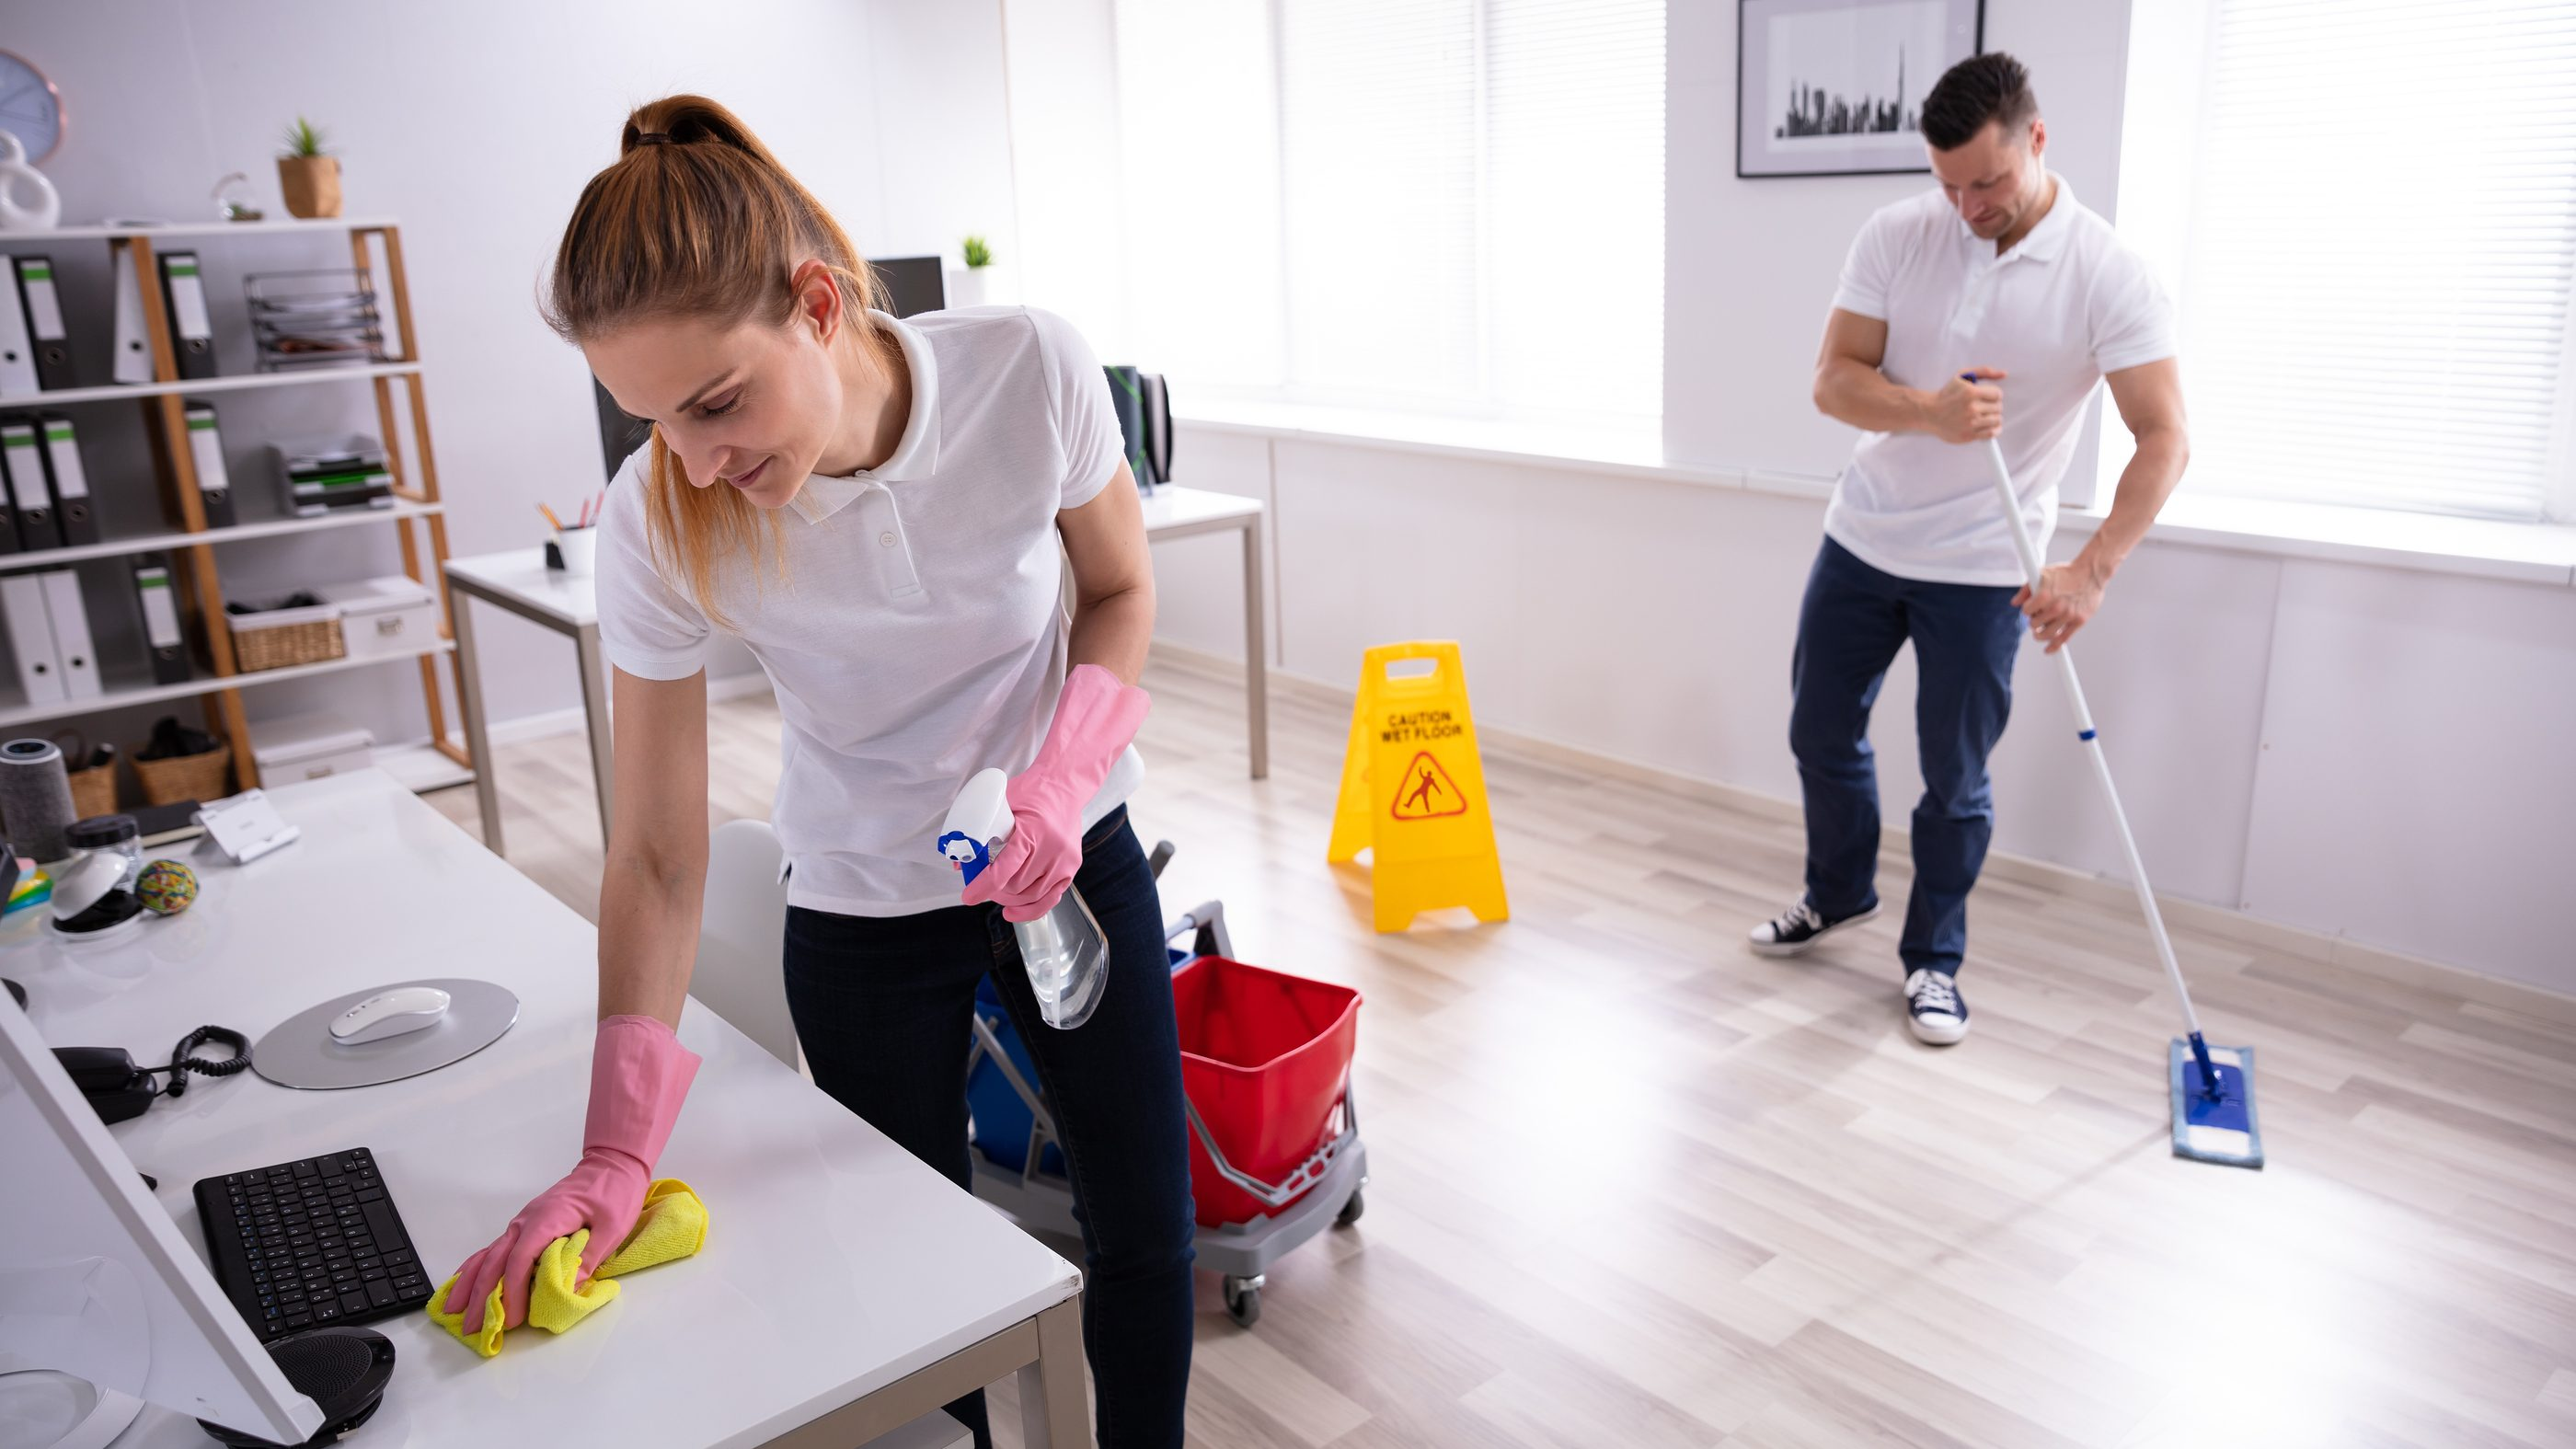 Excellent Reasons To Hire A Janitorial Service That Can Remove Allergens From Your Office